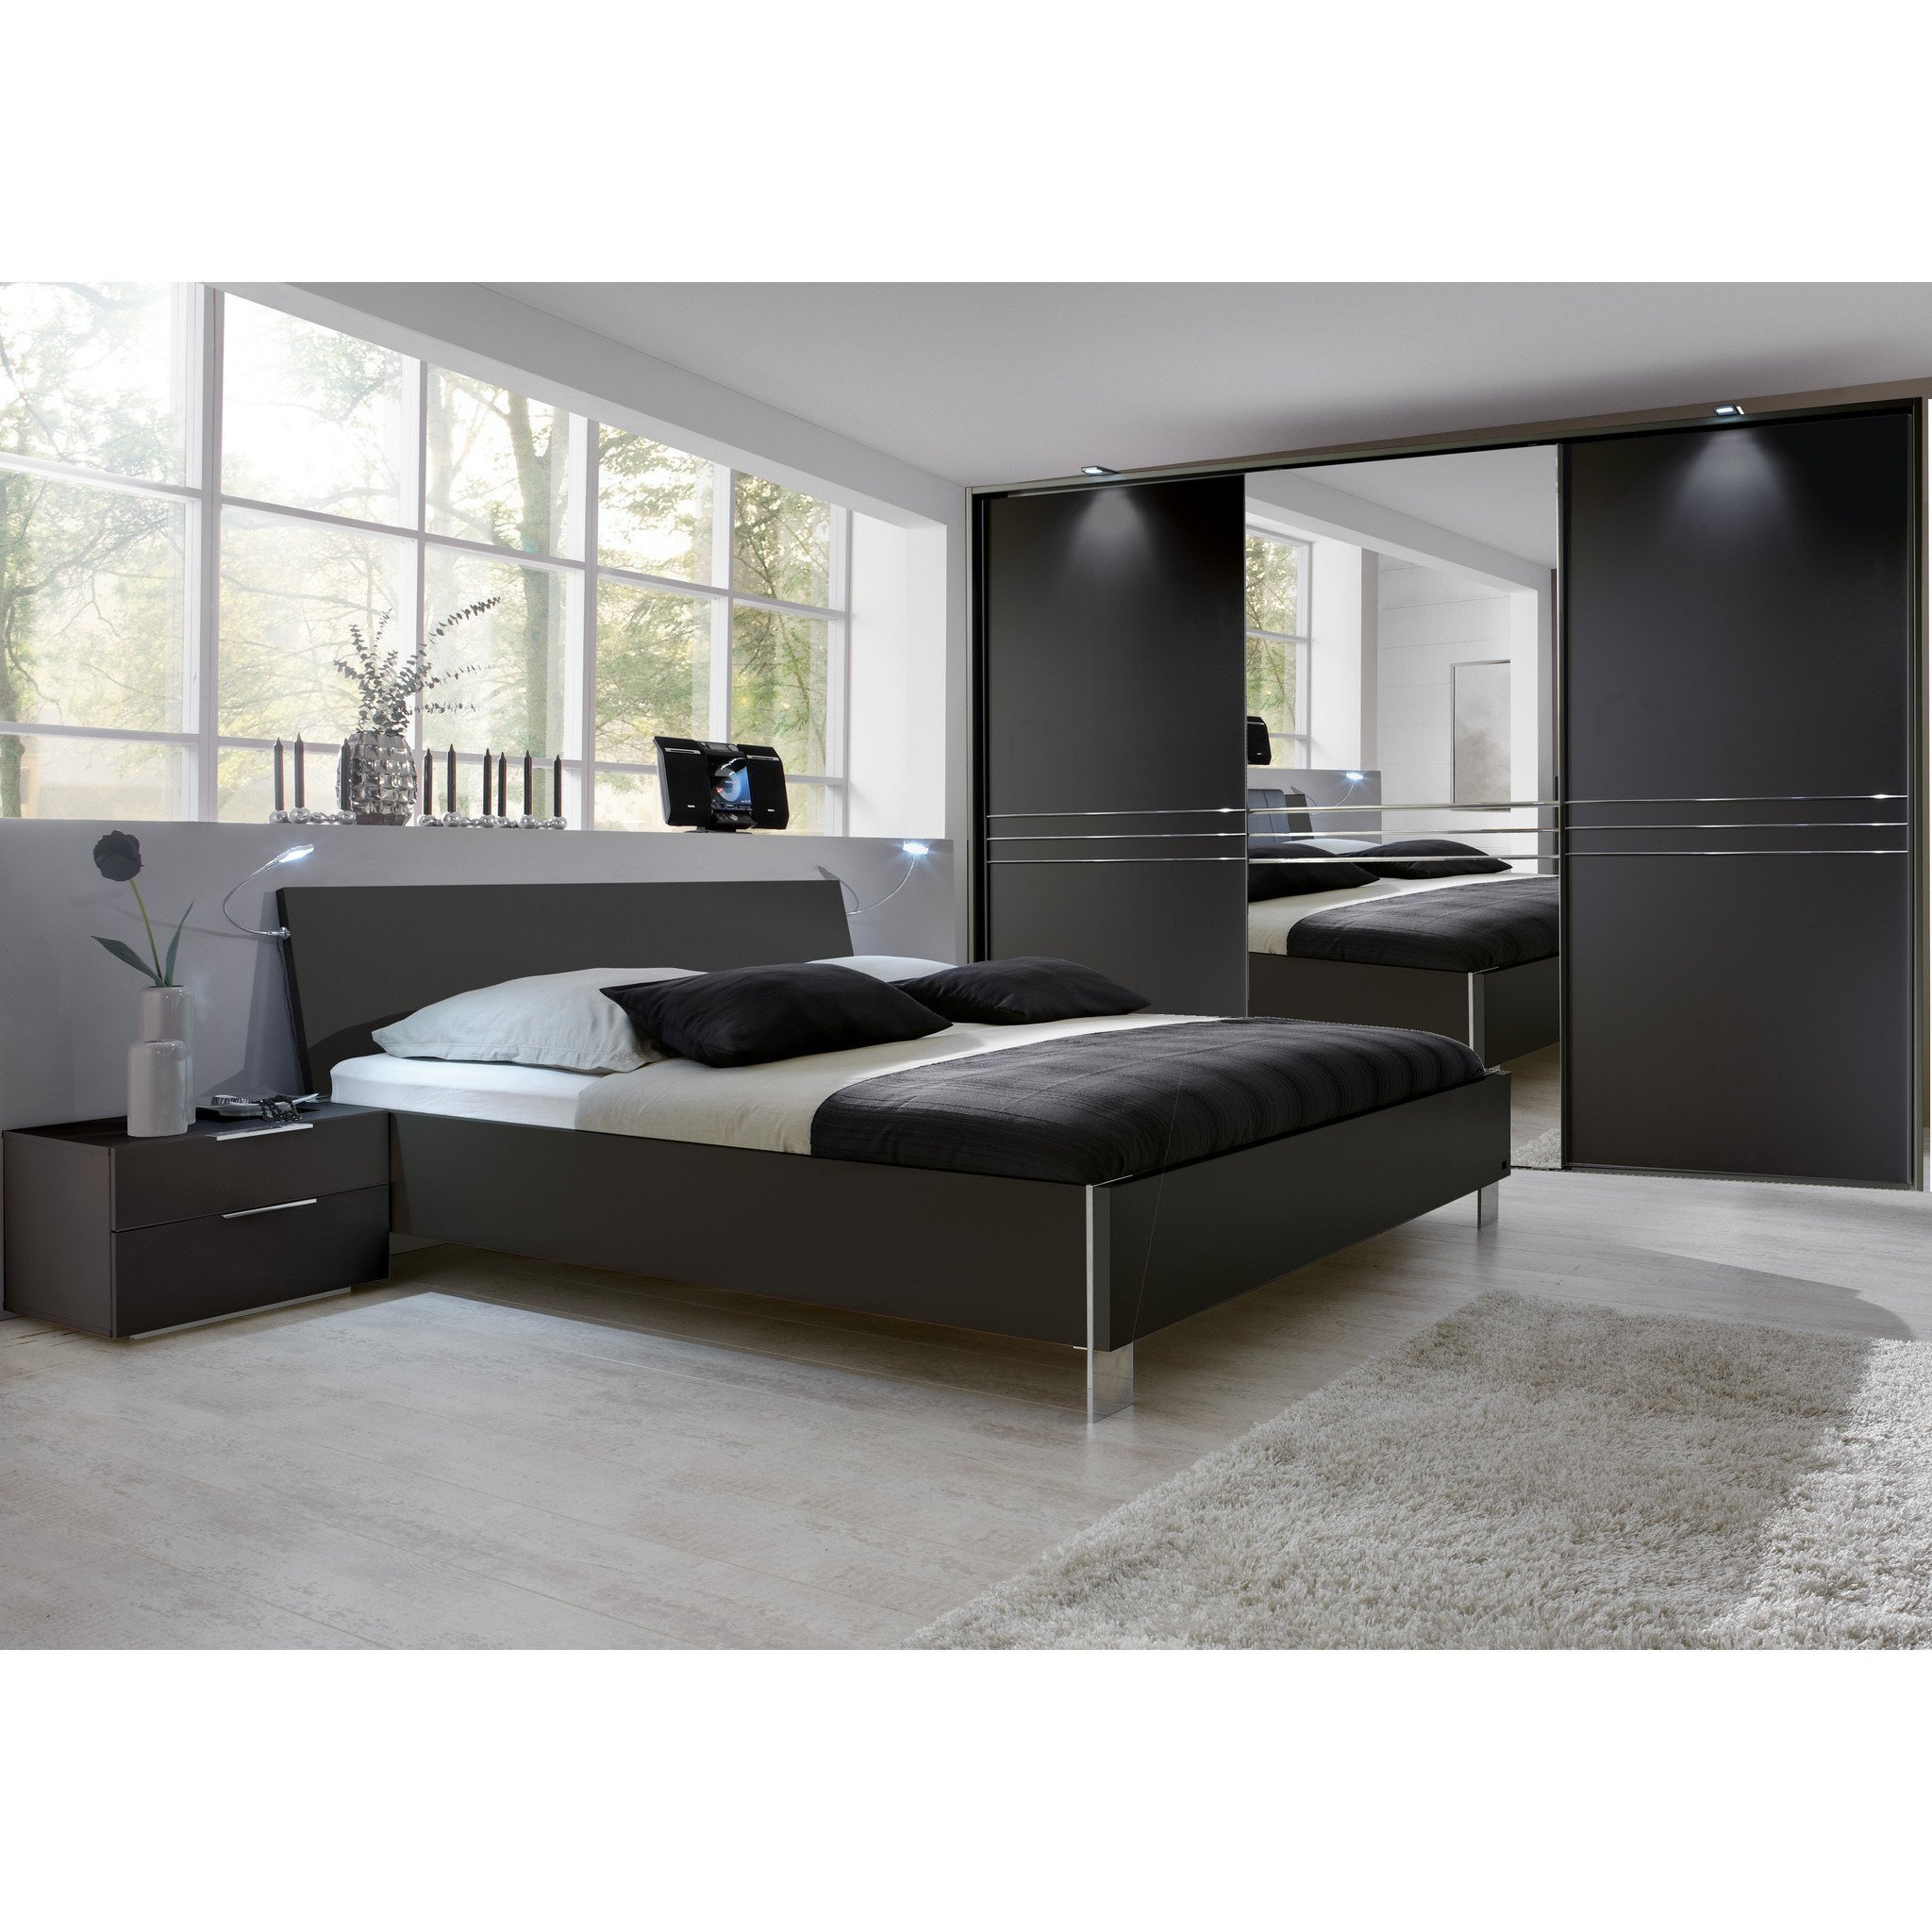 Best Qmax Medway German Bedroom Furniture Lava Brown Black – Freedom Homestore With Pictures